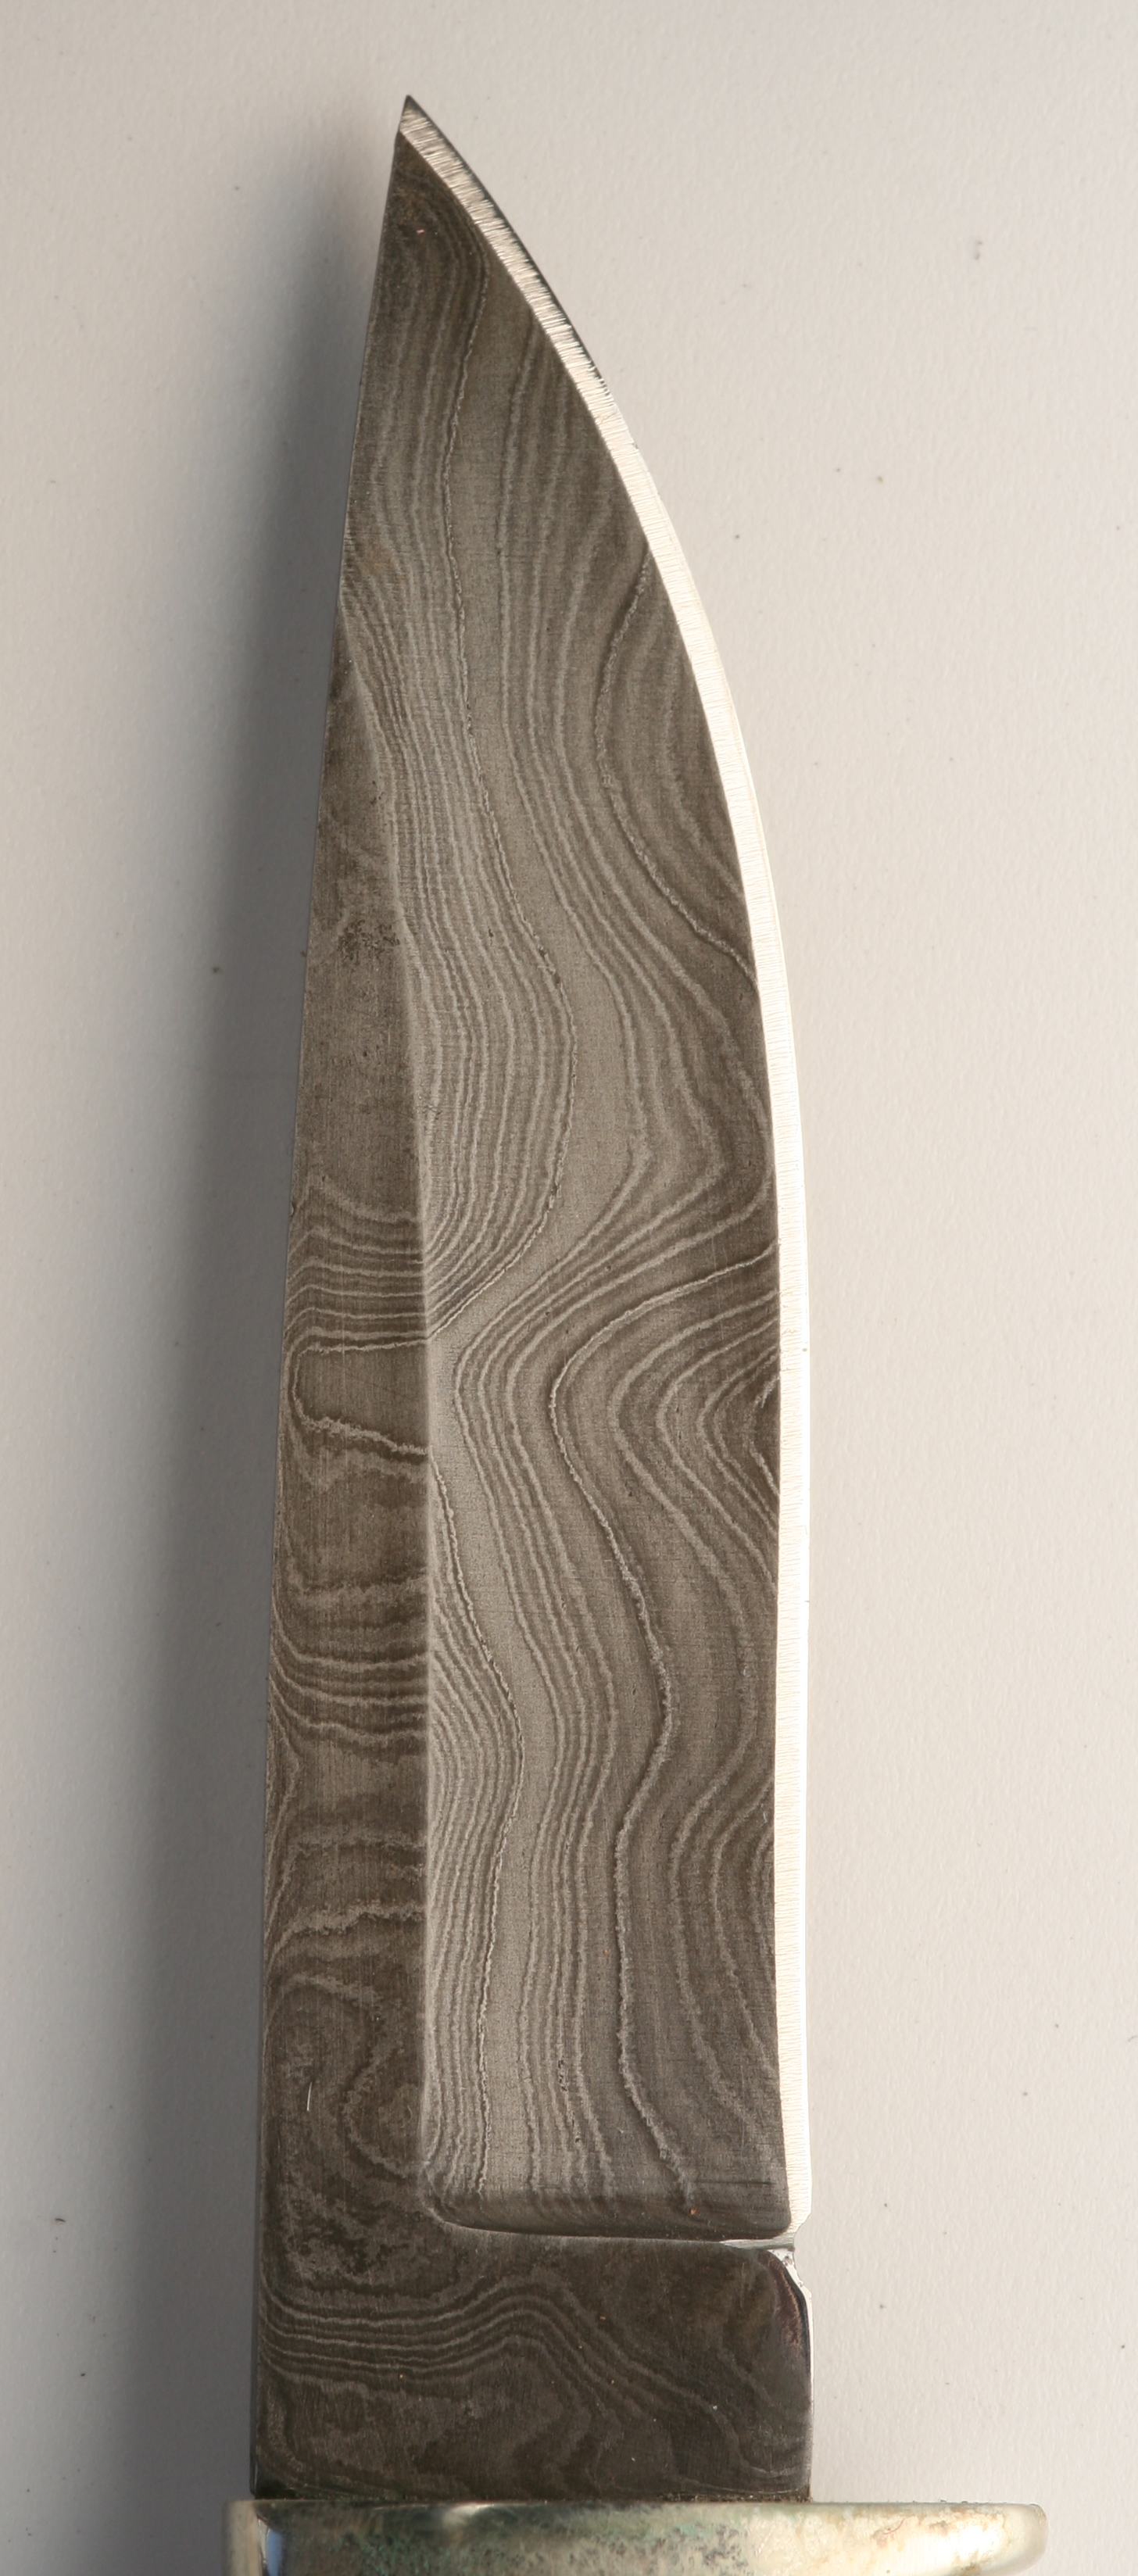 A damasus knife blade showing the folding or pattern welded appearance